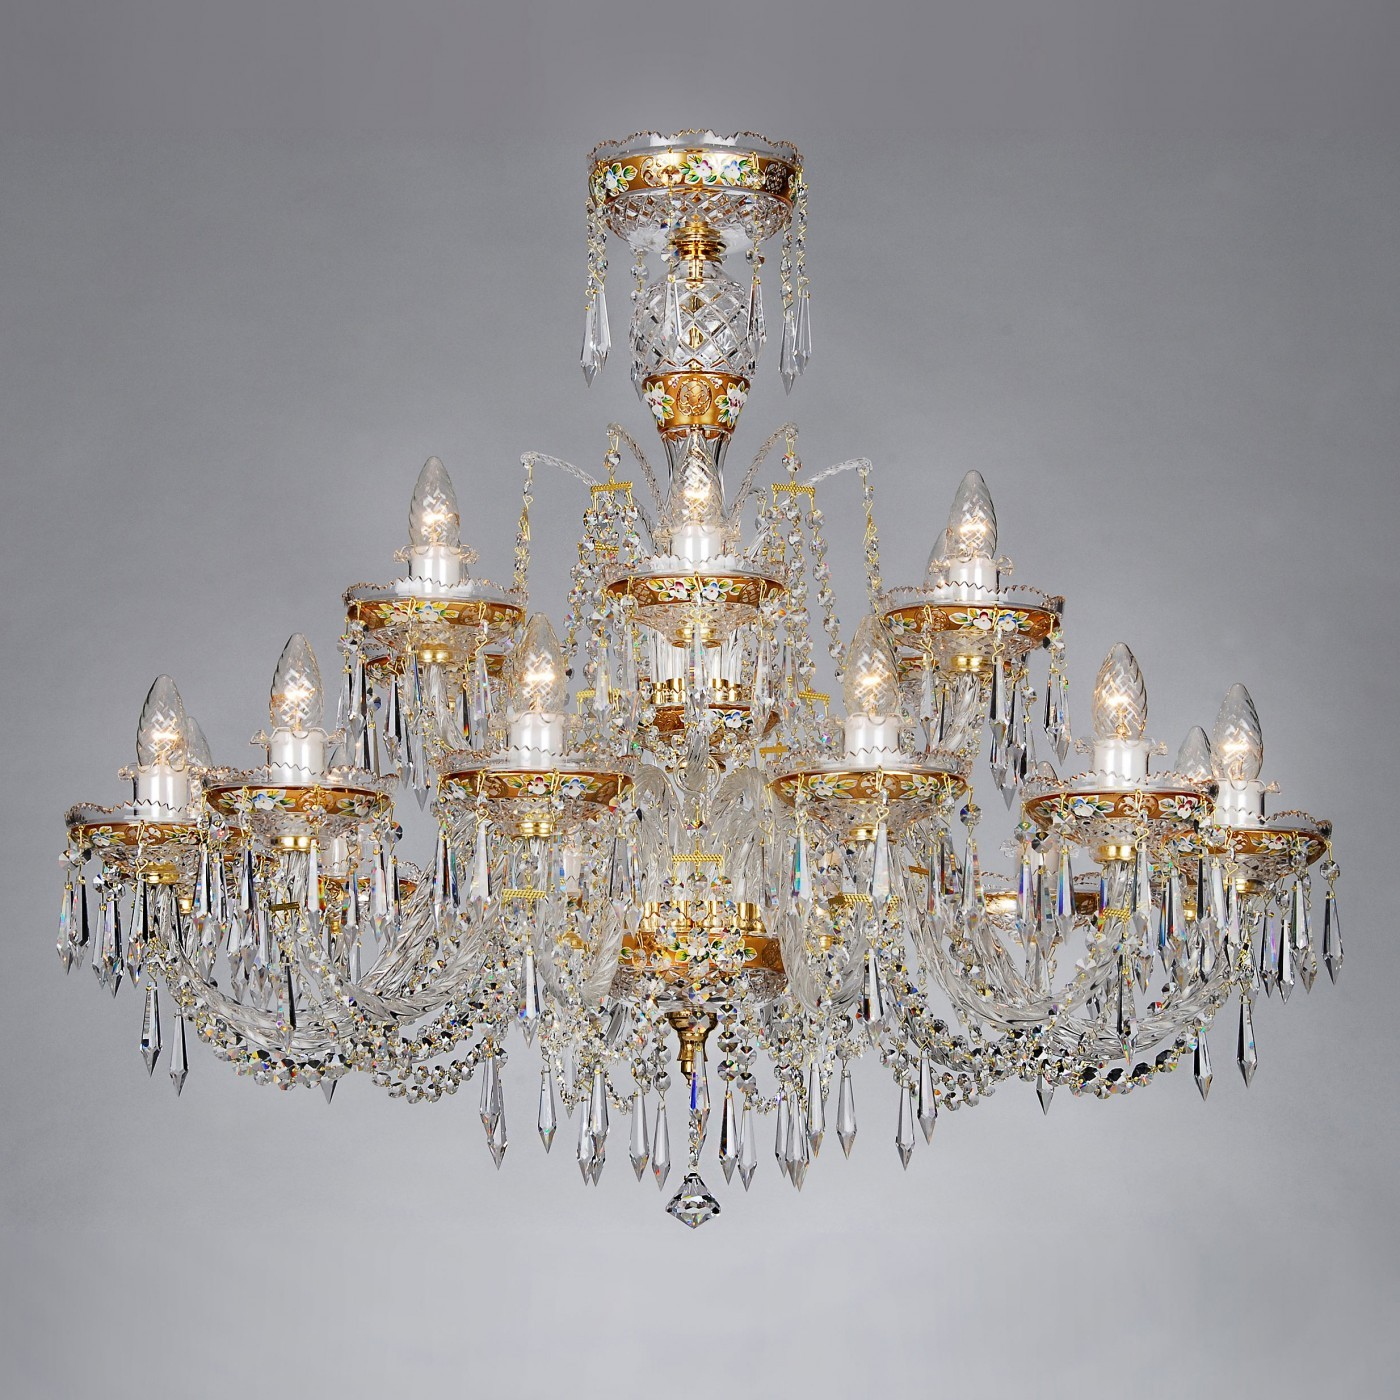 Czech crystal chandeliers manufacturer musethecollective crystal chandeliers merry czech crystal chandeliers manufacturer musethecollective arubaitofo Choice Image